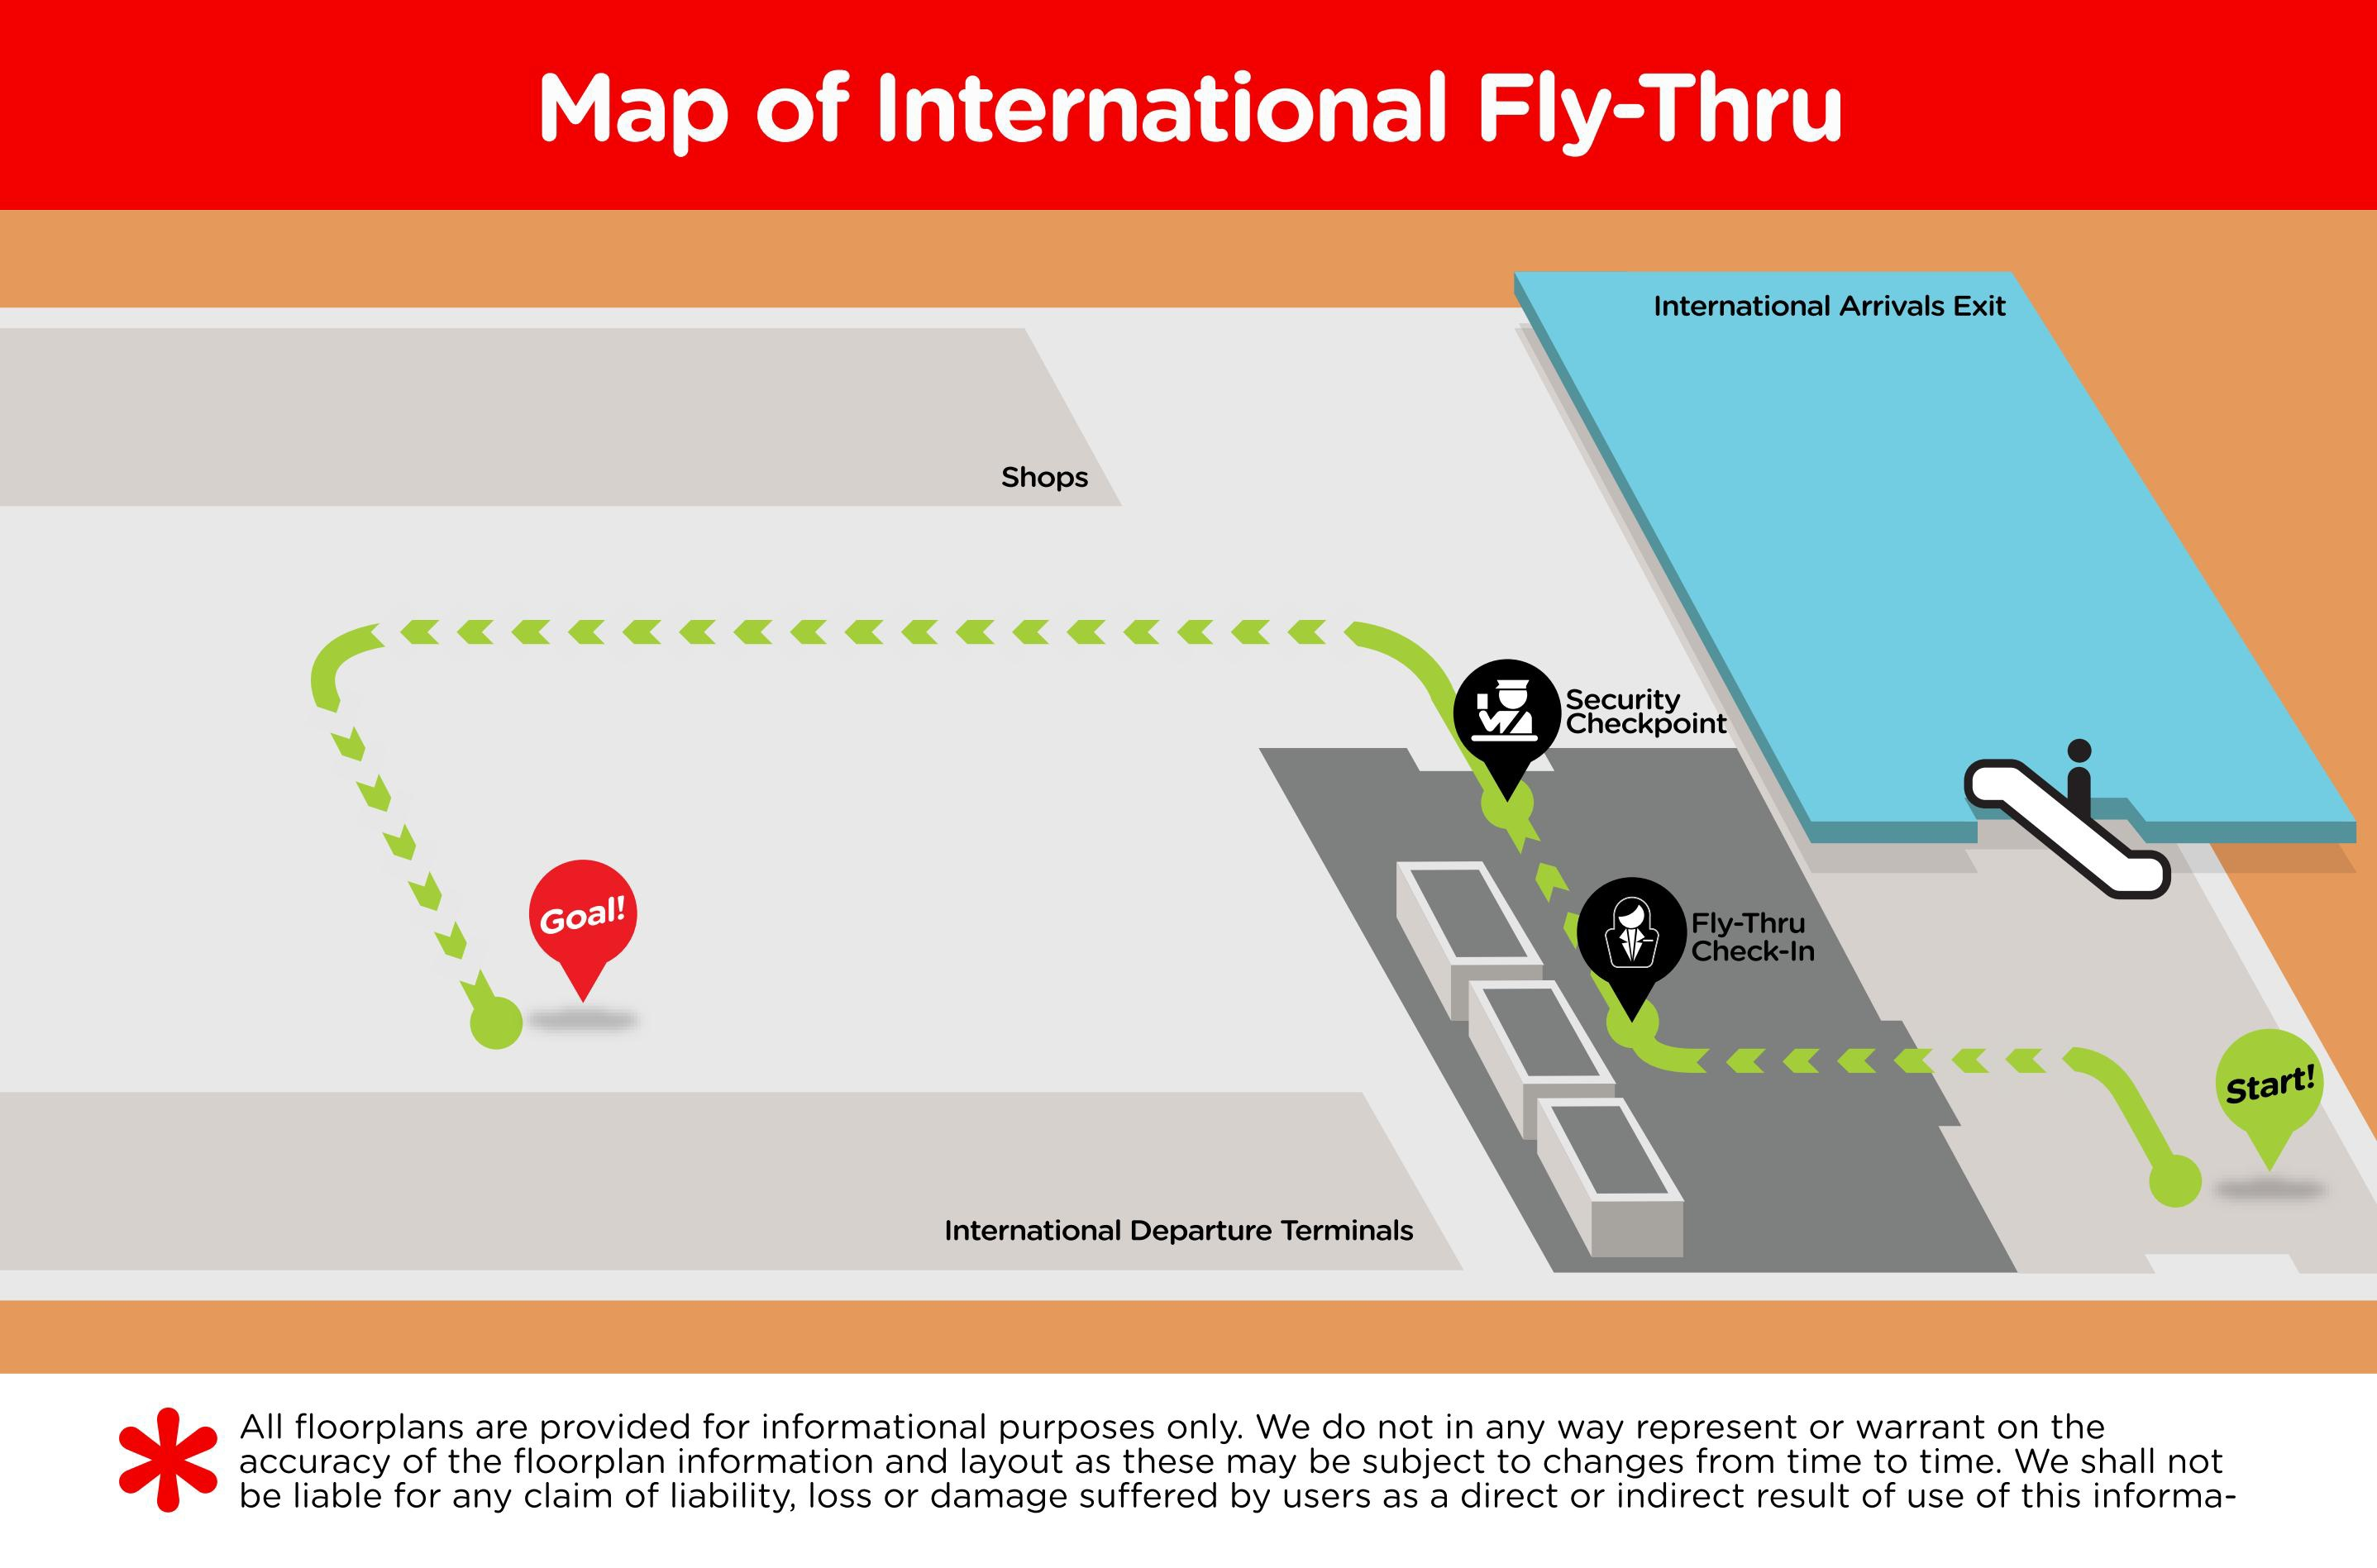 fly-thru-guide-map-intint_01